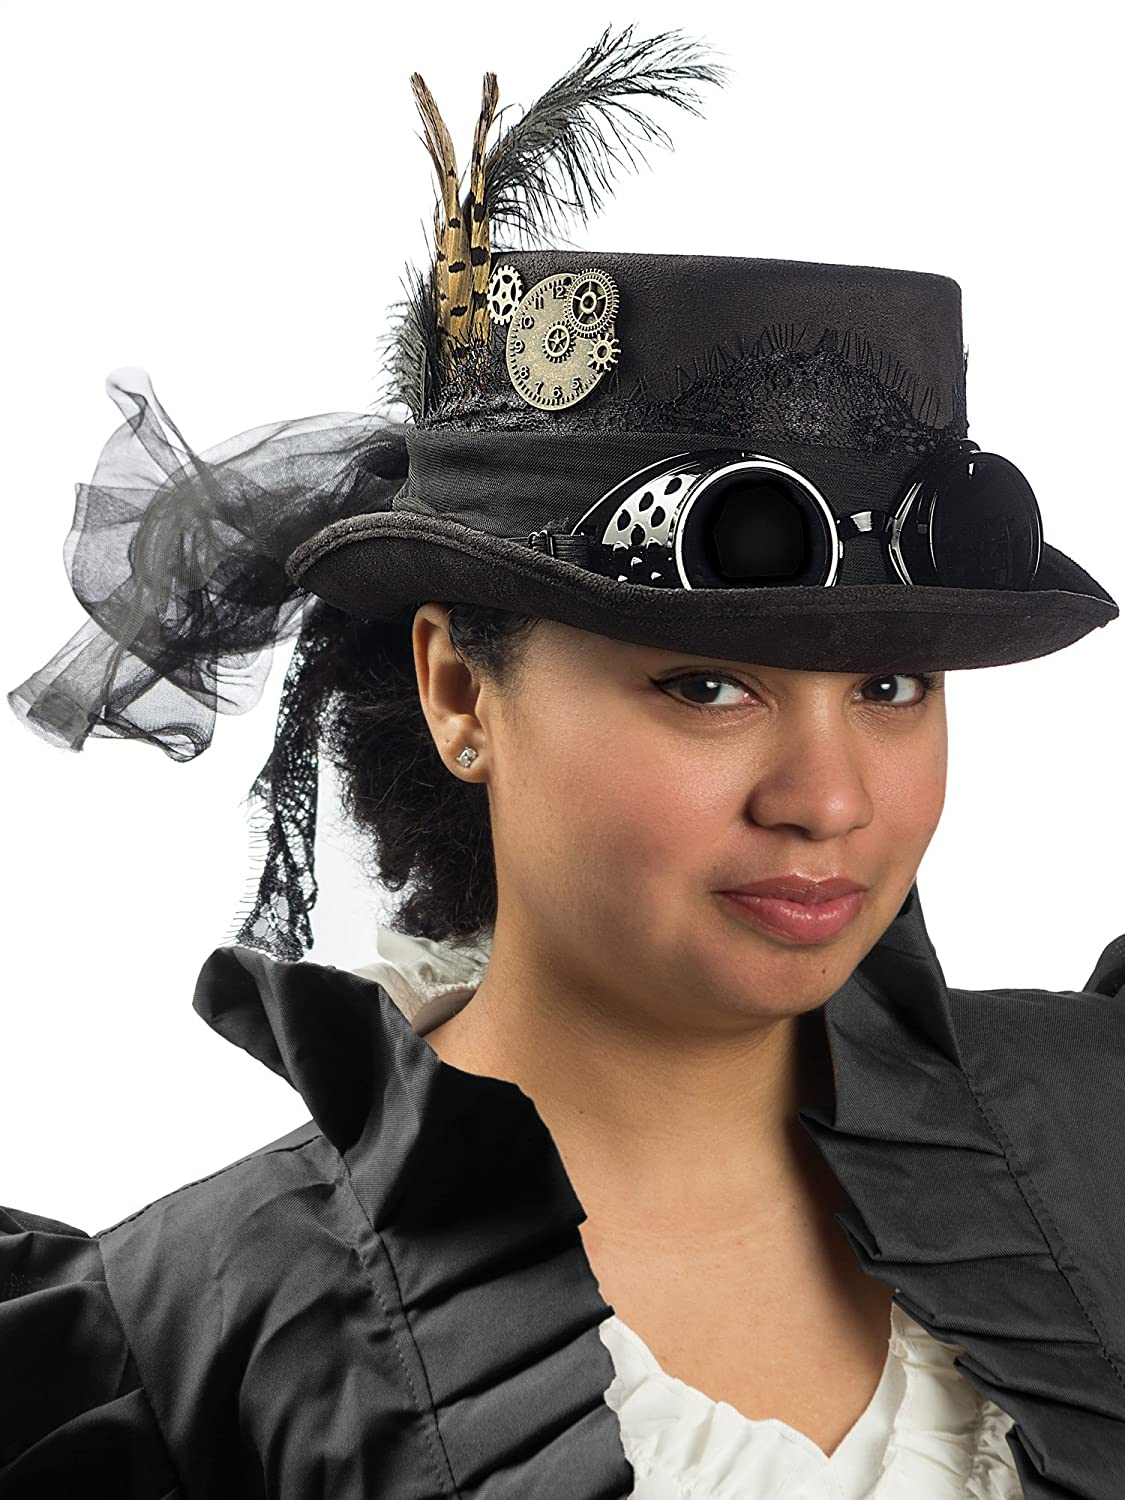 Steampunk Hats | Top Hats | Bowler Deluxe Velvet 4.25 Inch Steampunk Top Hat with Removable Goggles $24.87 AT vintagedancer.com